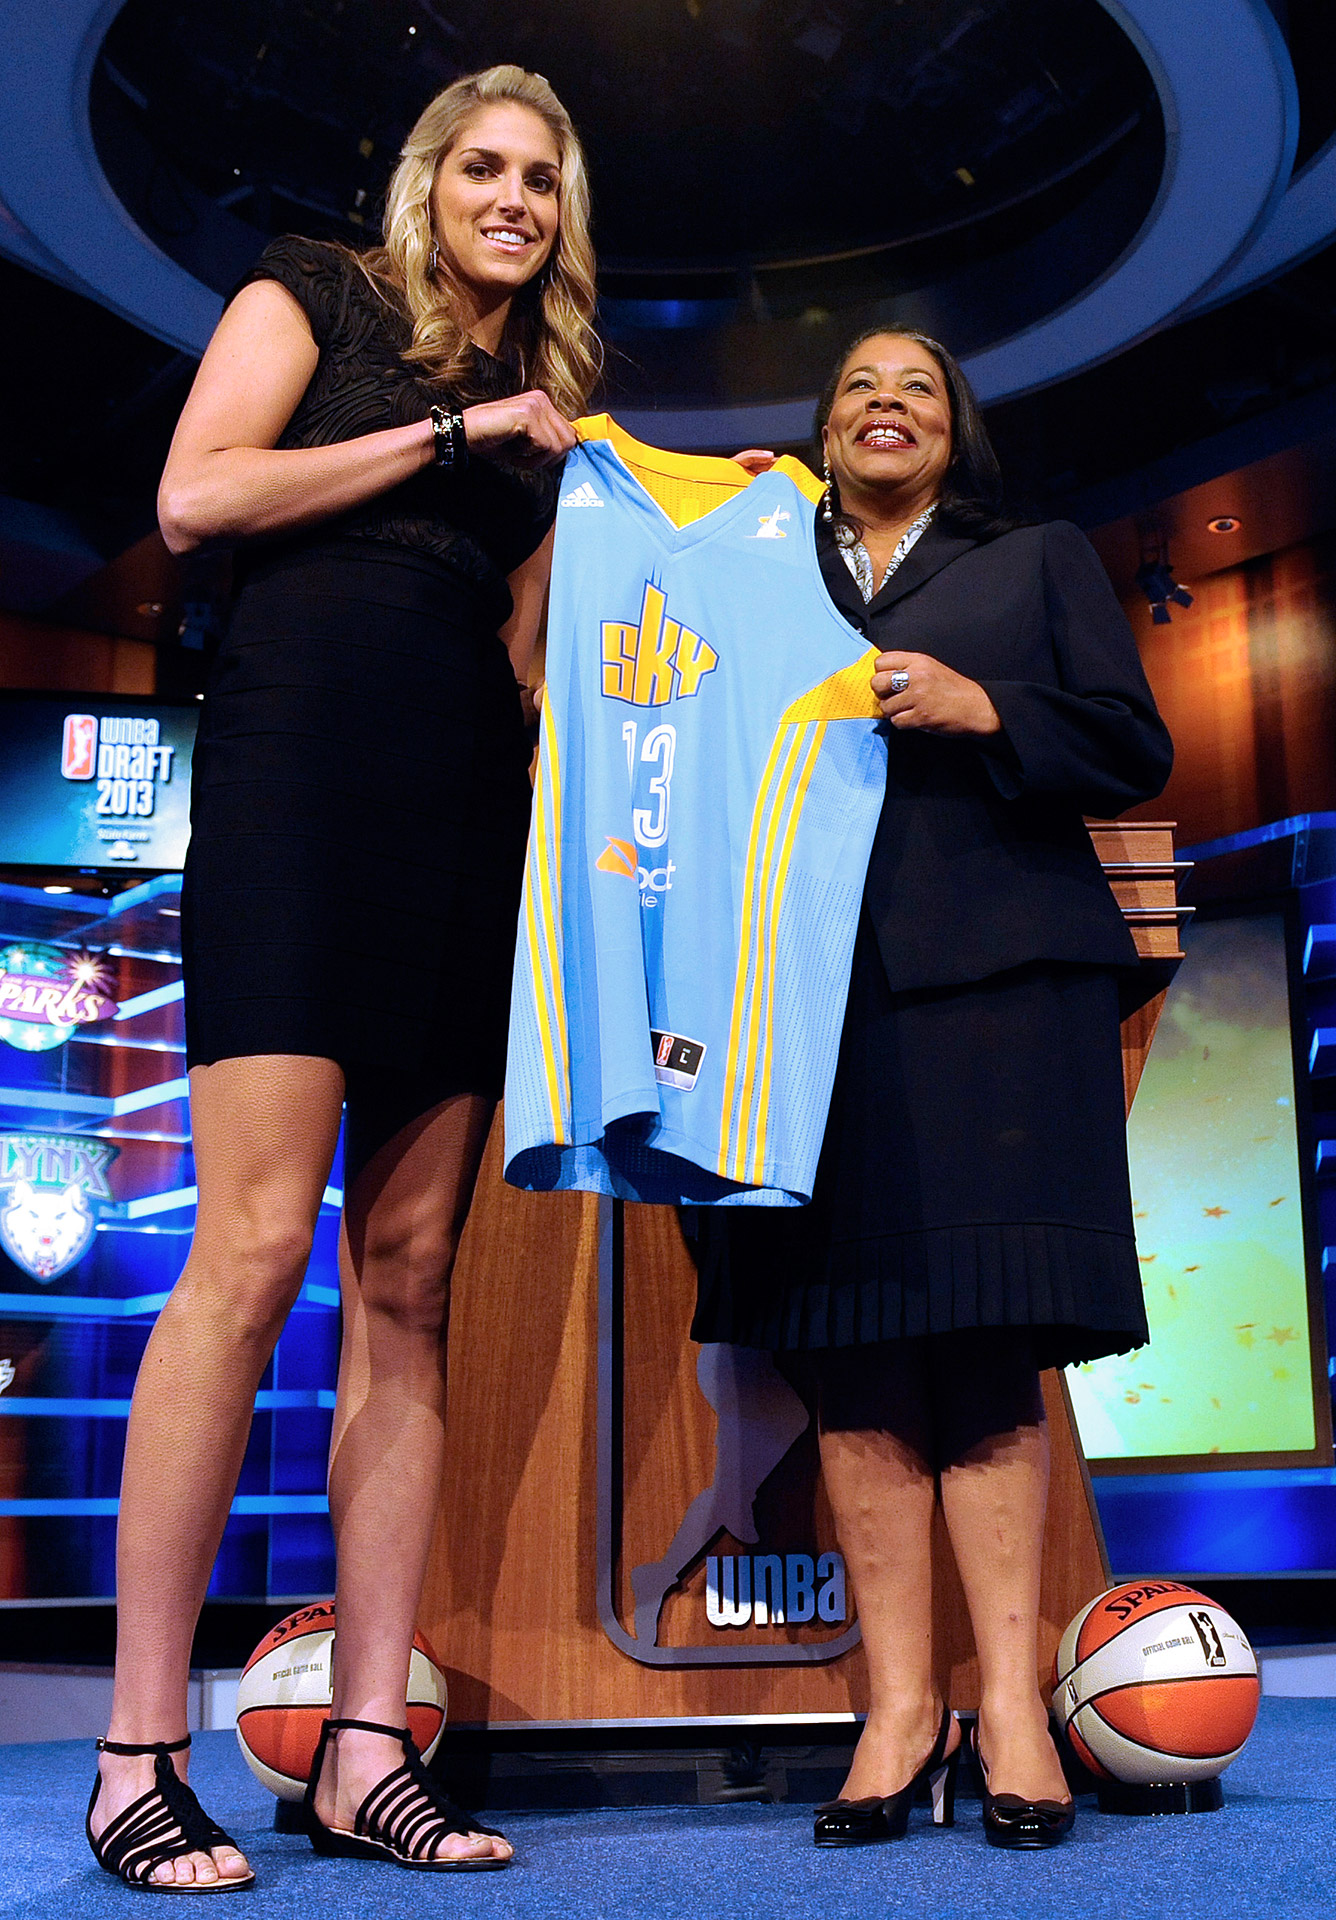 Elena Delle Donne was the second overall selection -- behind Brittney Griner -- in the 2013 WNBA draft.